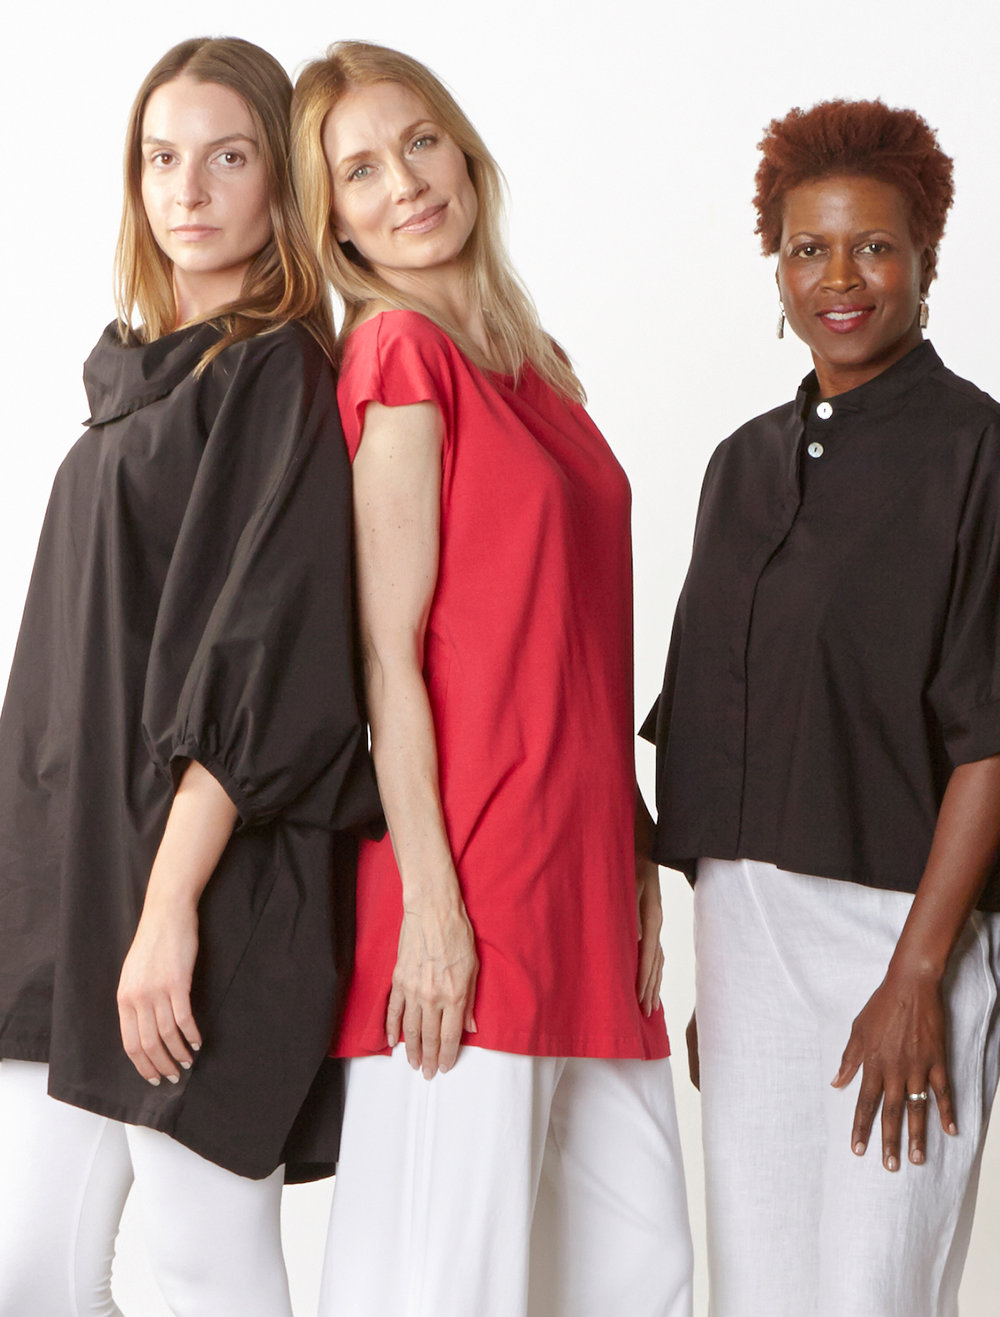 Wilde Tunic, Joe Shirt in Black Stretch Poplin, Dylan Tunic in Valerian Organic Bamboo Cotton